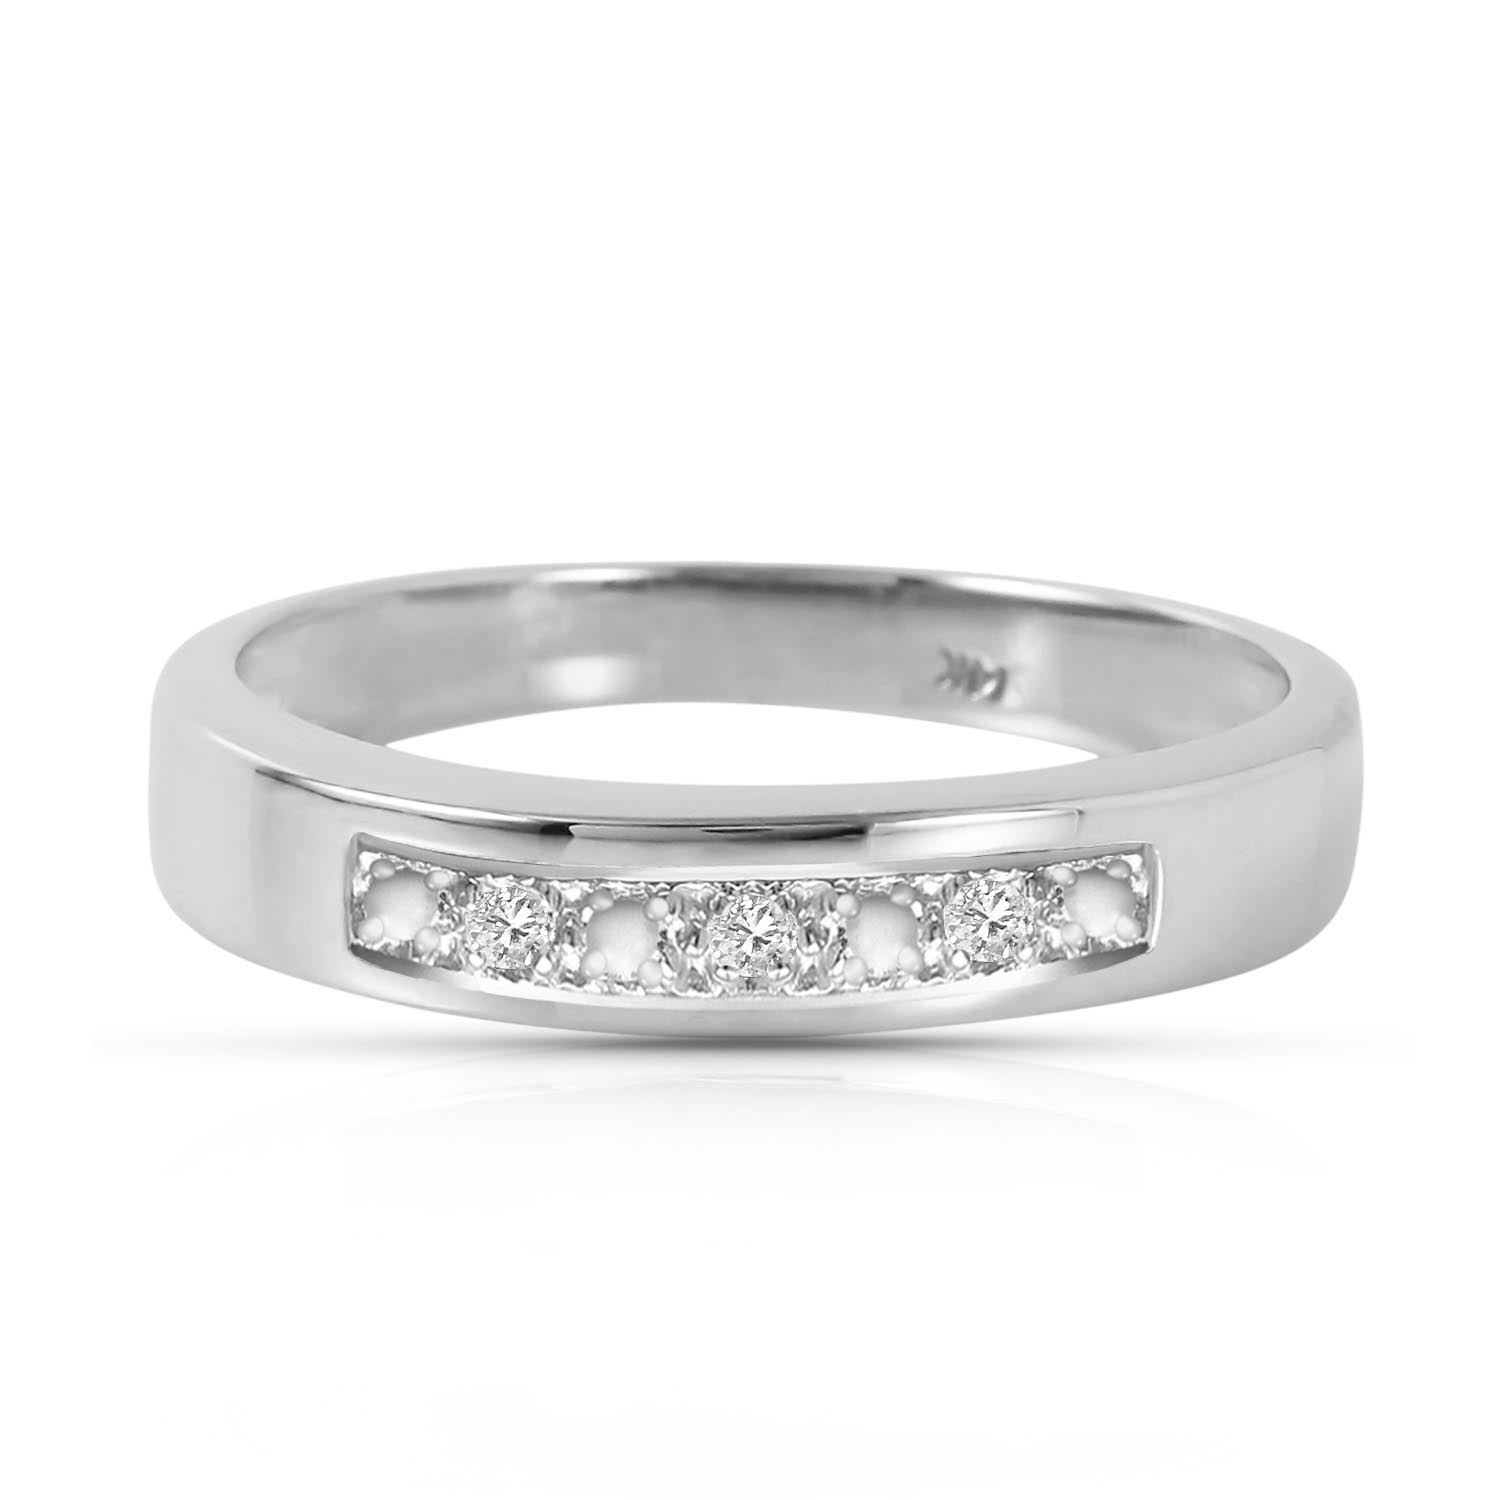 Round Cut Diamond Ring 0.02 ctw in Sterling Silver